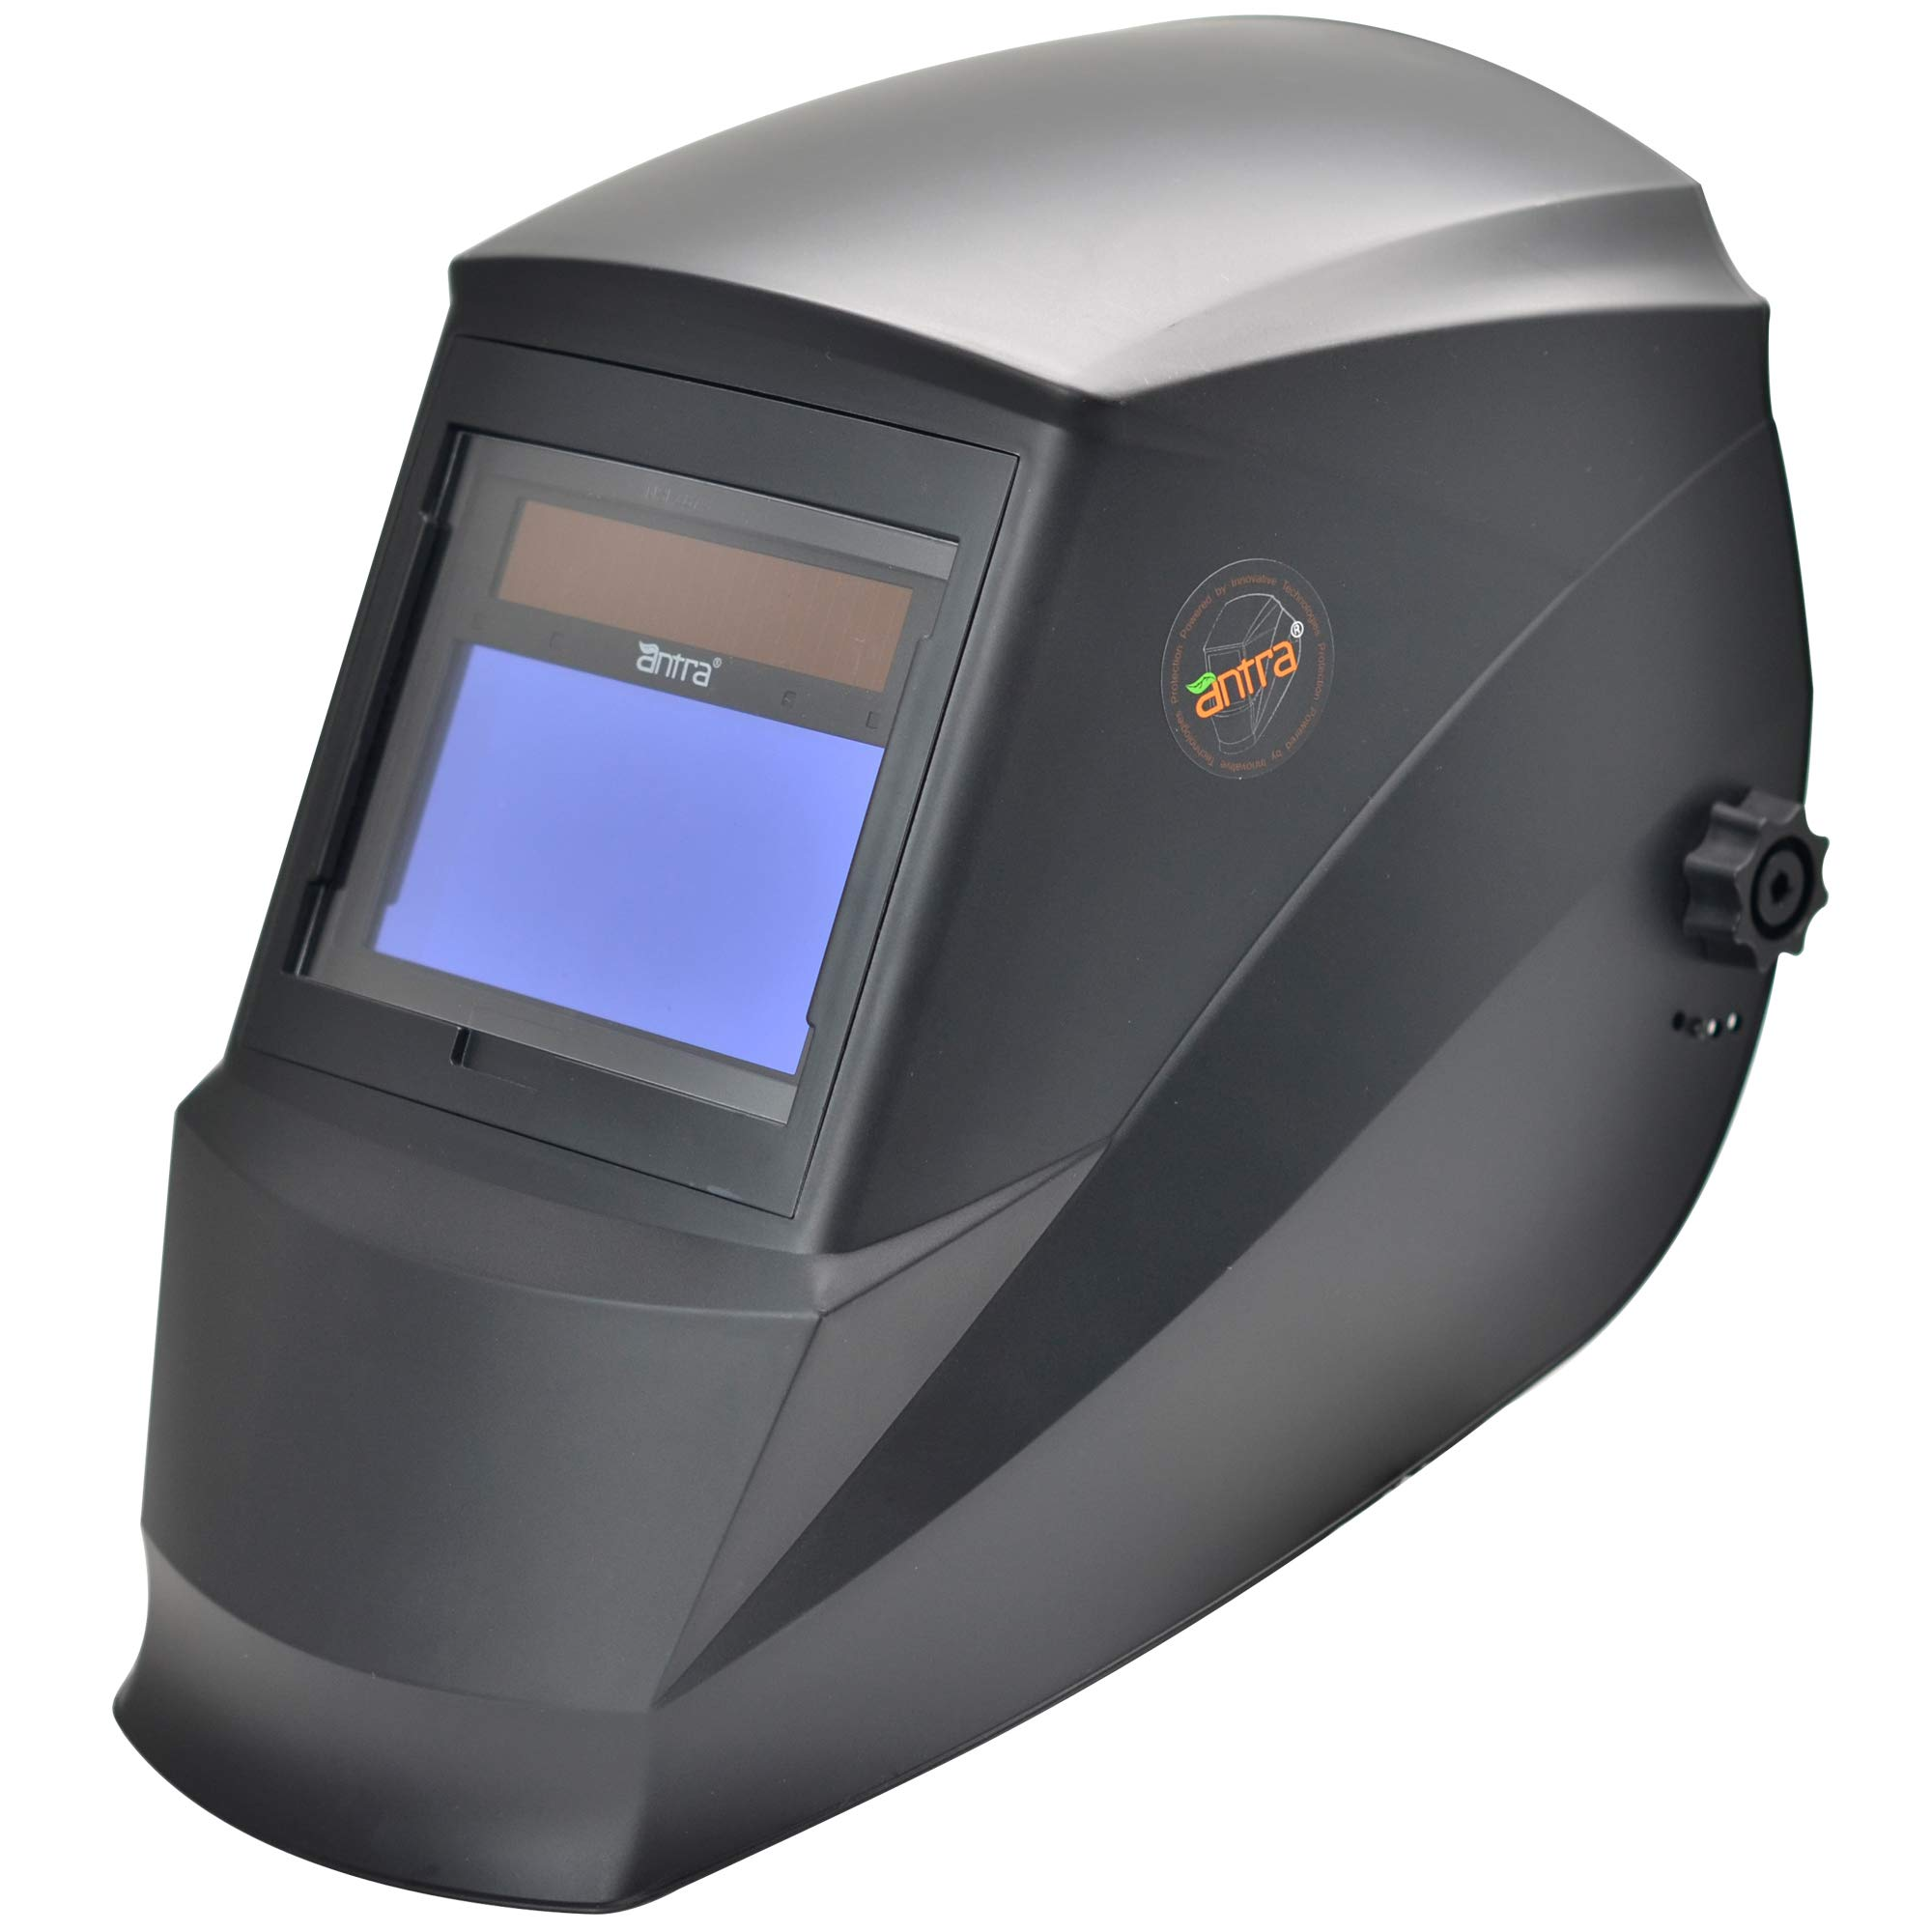 Antra Welding Helmet Auto Darkening AH7-360-0000, Dual Power Solar+ Battery, Wide Shade Range 4/5-9/9-13 with Grinding, 6+1 Extra Lens Covers, Stable for TIG MIG MMA Plasma by Antra